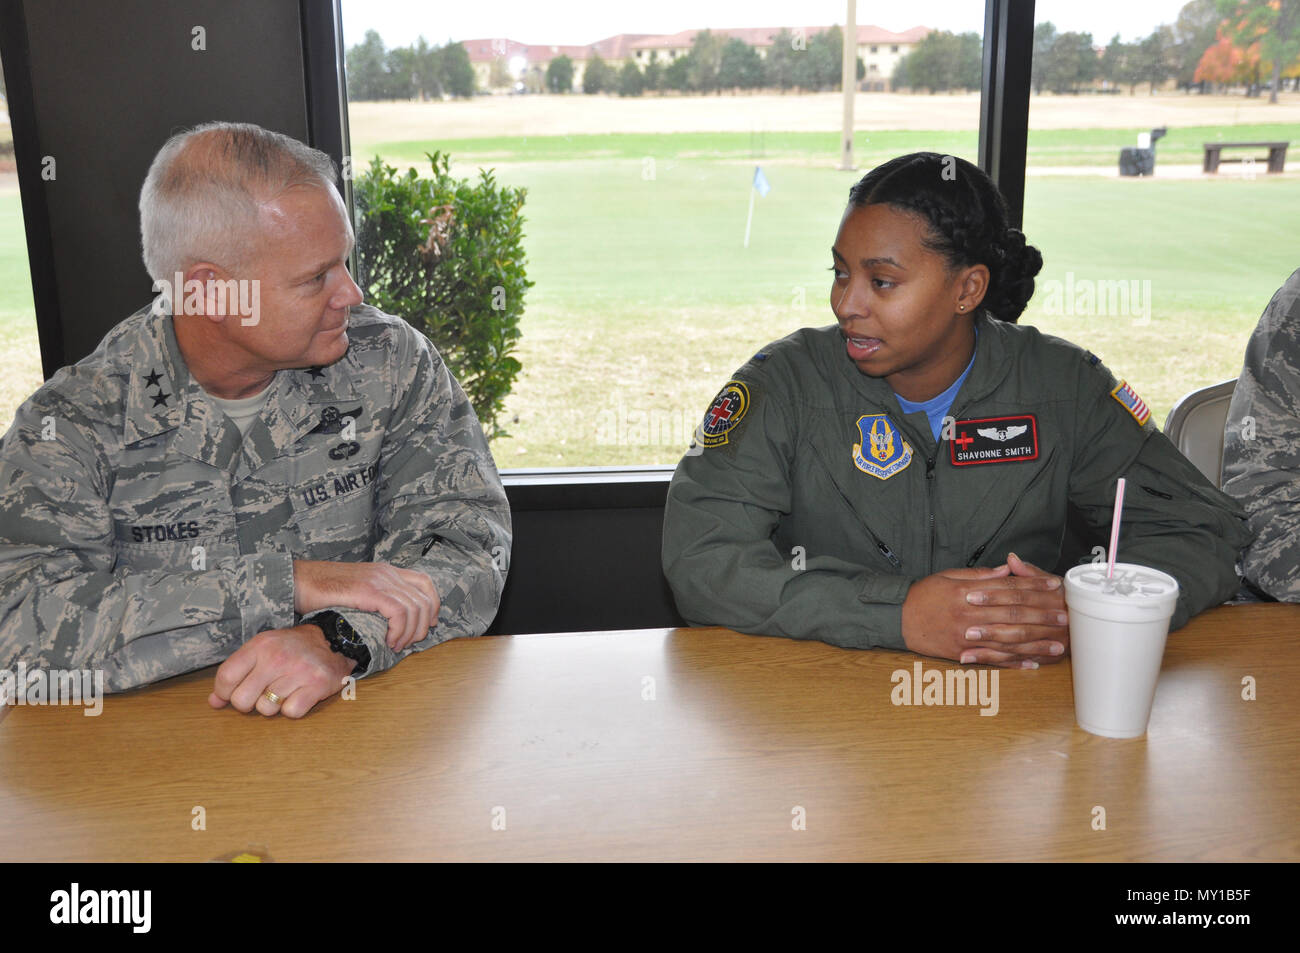 Commanding General of the 22nd Air Force, Maj. Gen. John Stokes, speaks with 1st Lt. Shavonne Smith, member of the Company Grade Officers Club while joing the club for a mentoring lunch Dec. 3 at Maxwell Air Force Base. Stokes came back to Maxwell to spend time with his old unit, the 908th Airlift Wing during the December Unit Training Assembly. (U.S. Air Force photo by Bradley J. Clark) - Stock Image